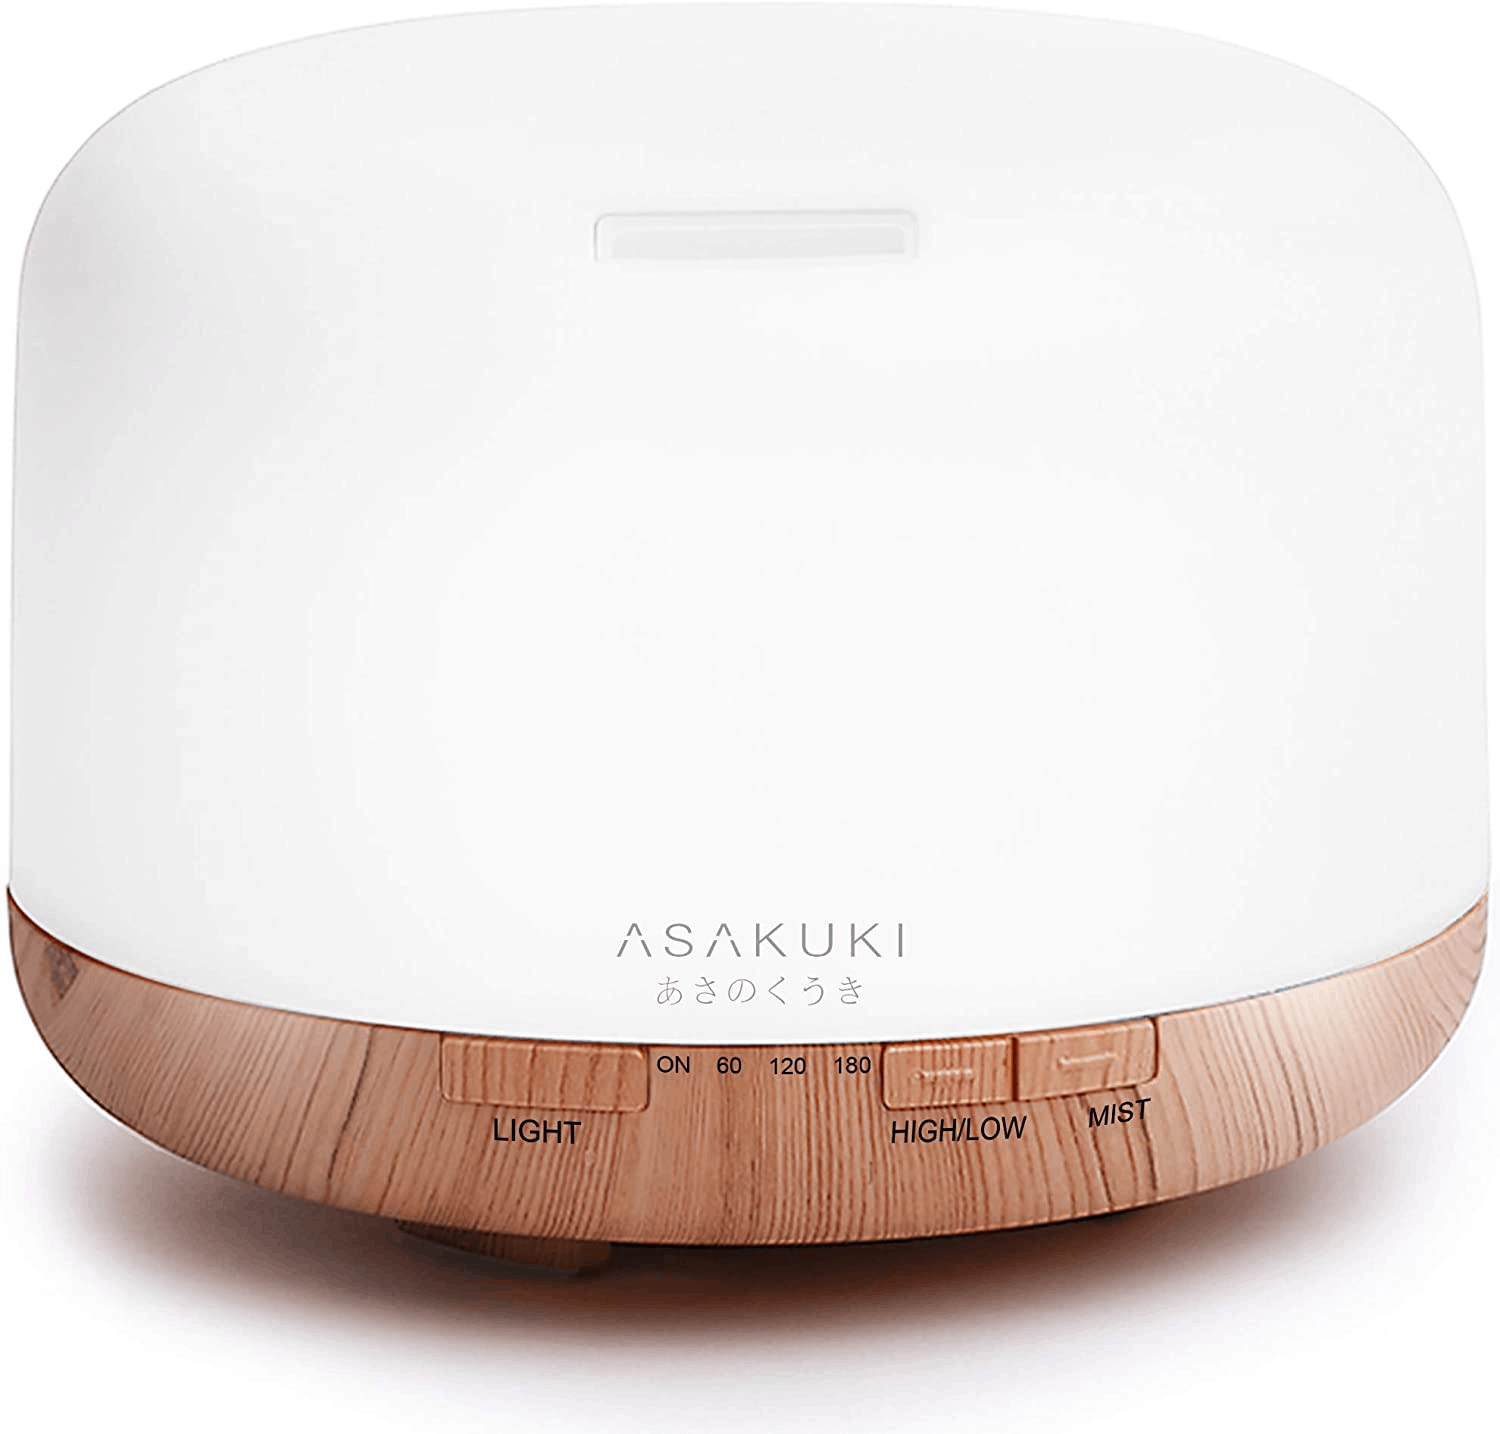 AKASUKI 300ML/500ML 5-in-1 Premium Humidifier